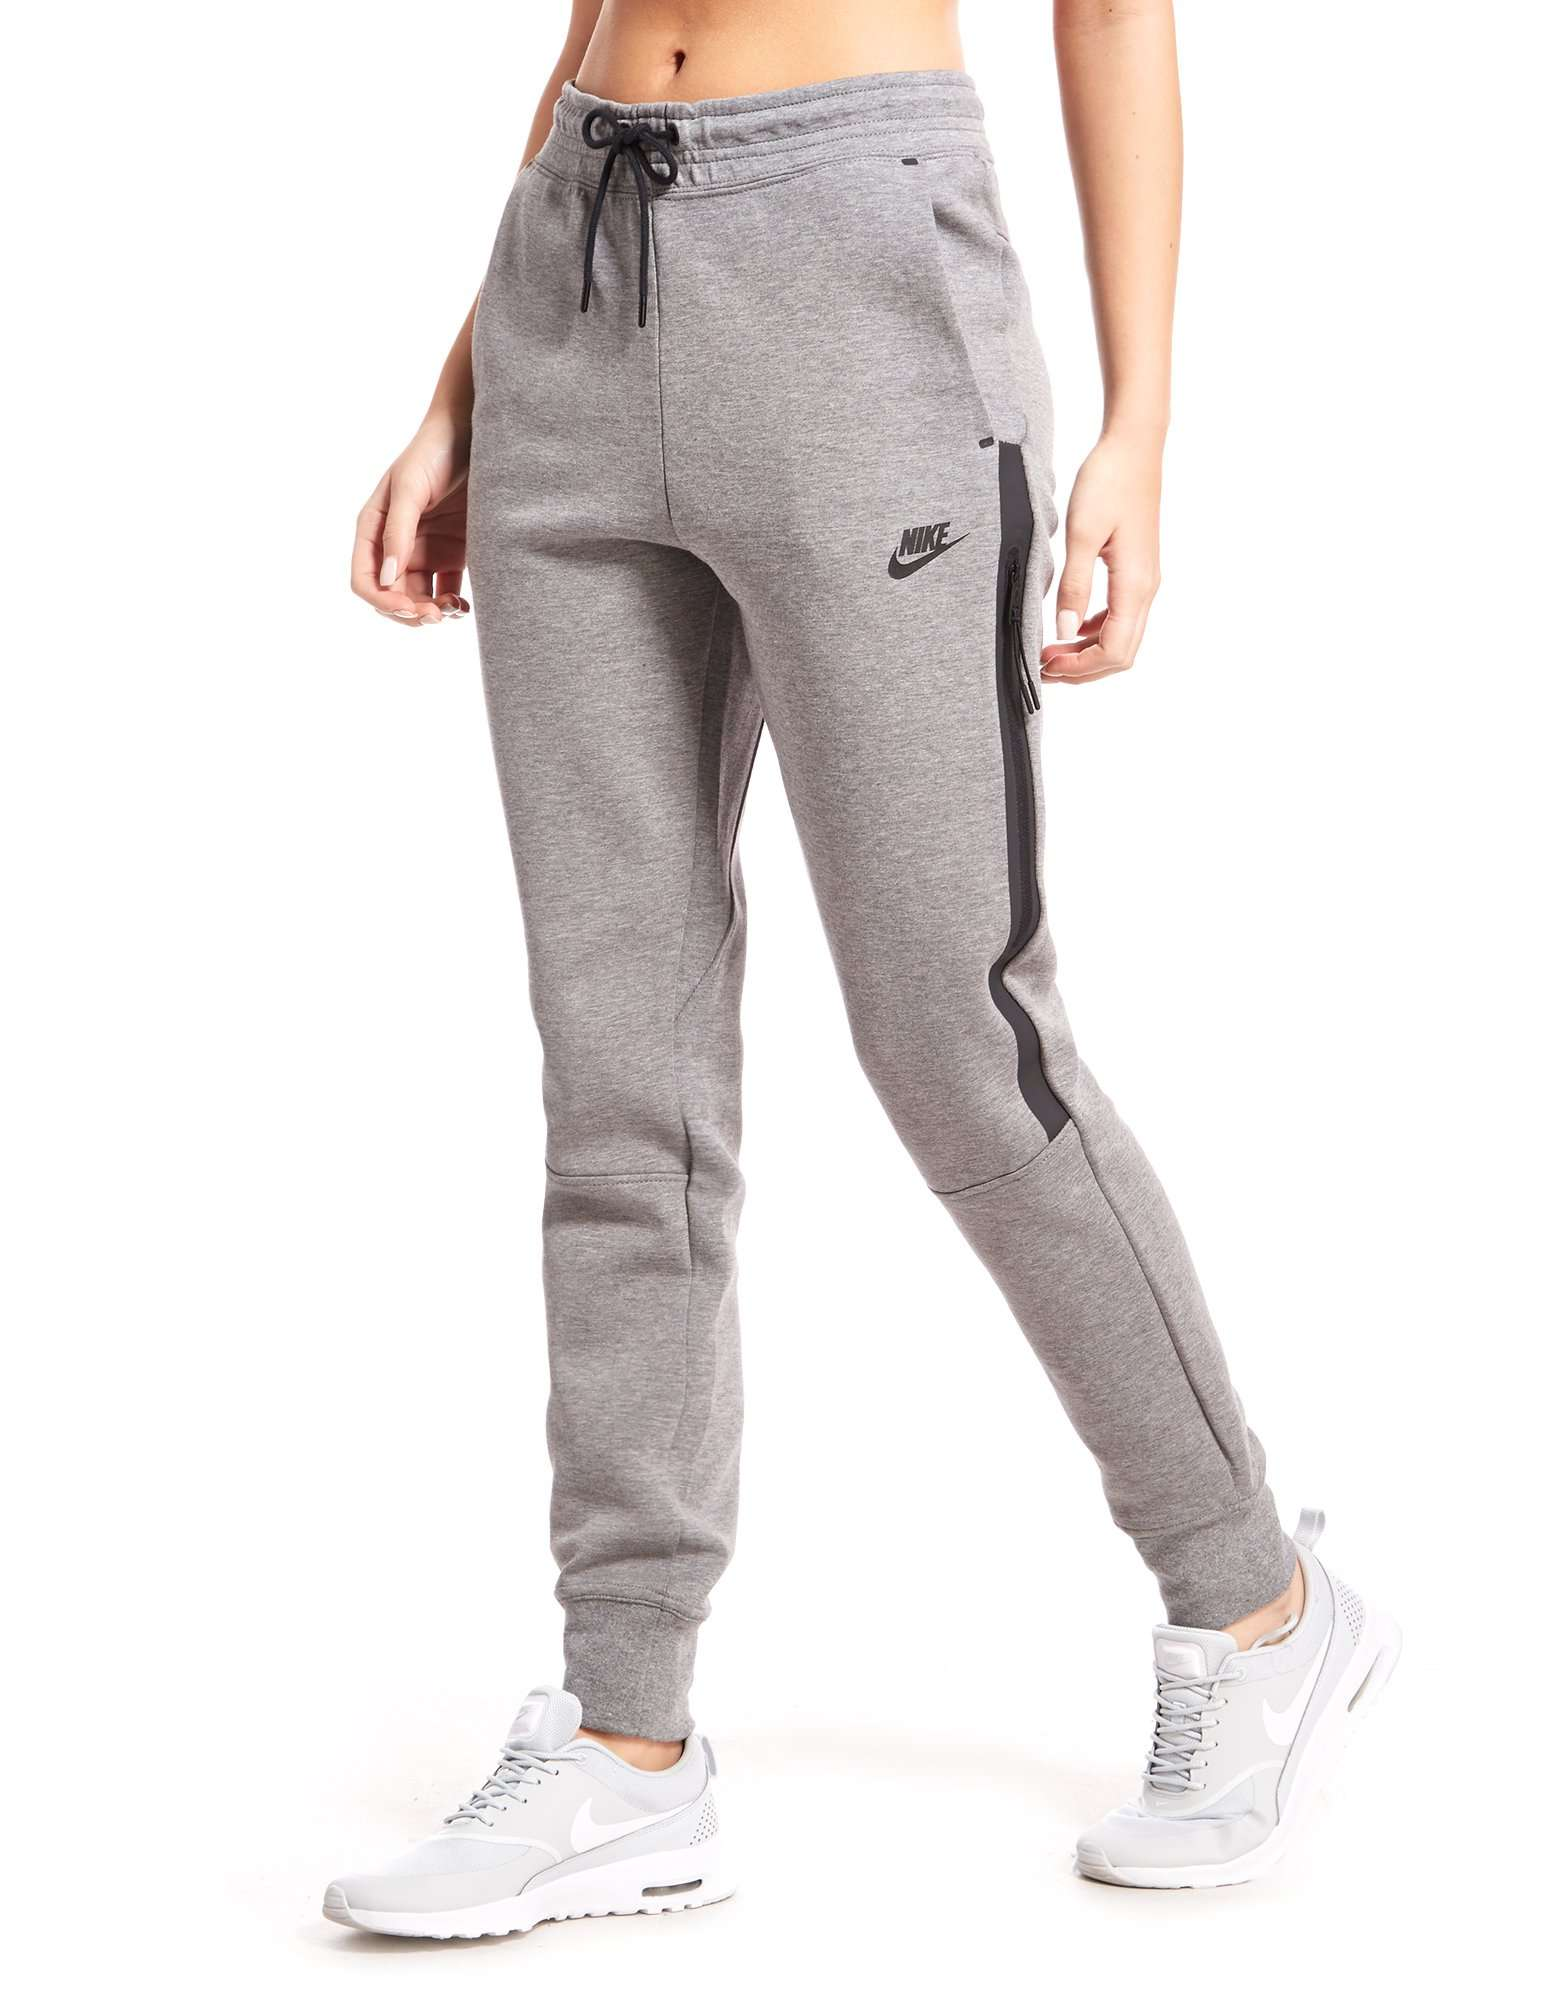 Model Nike Tech Pant 2 0 Grey Marl 59 Nike Sold On Endclothing Co Uk Buy As